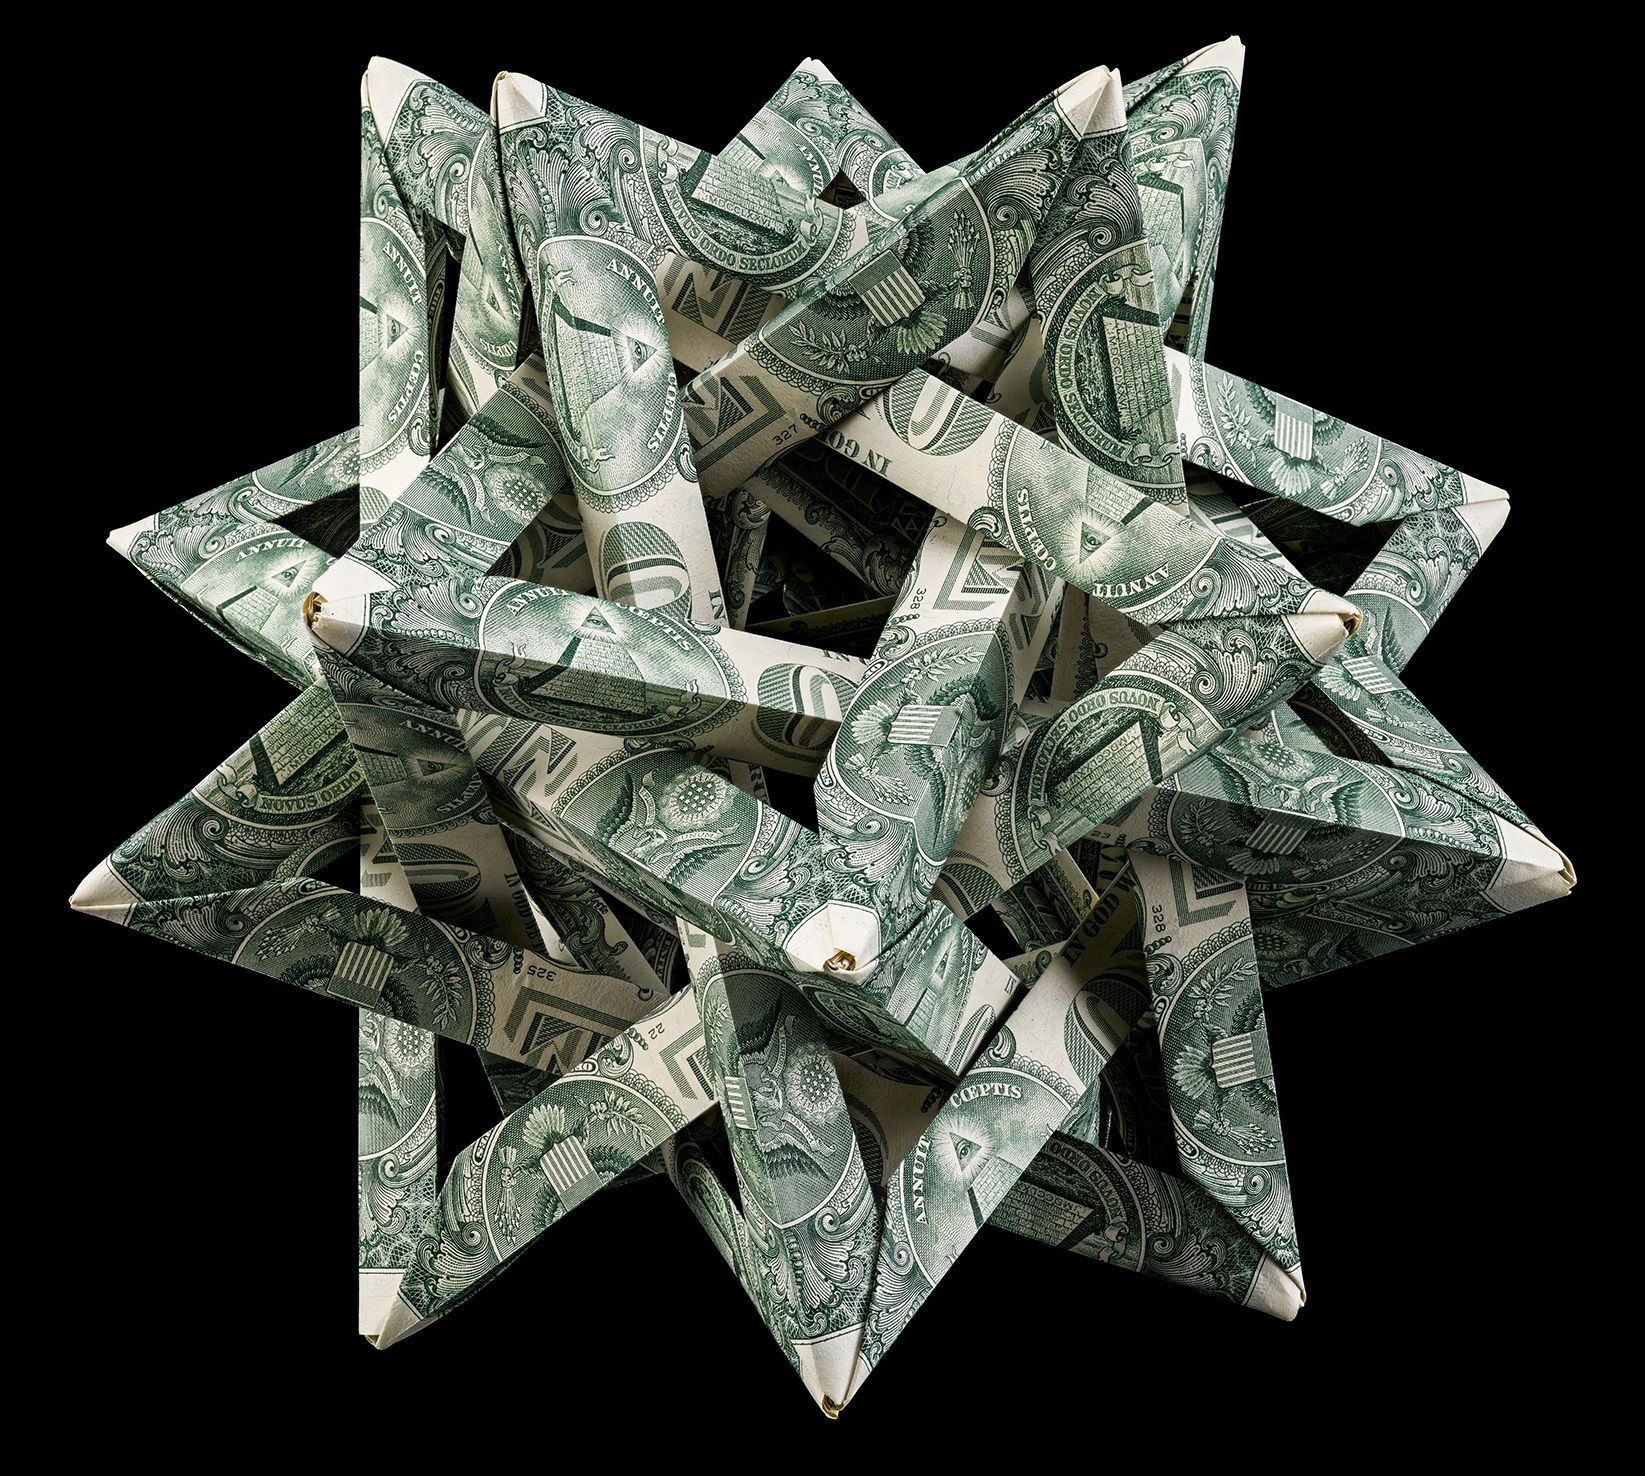 Origami Dollar Bill Shirt With Tie Art From Money Paper Money Origami National Museum Of American